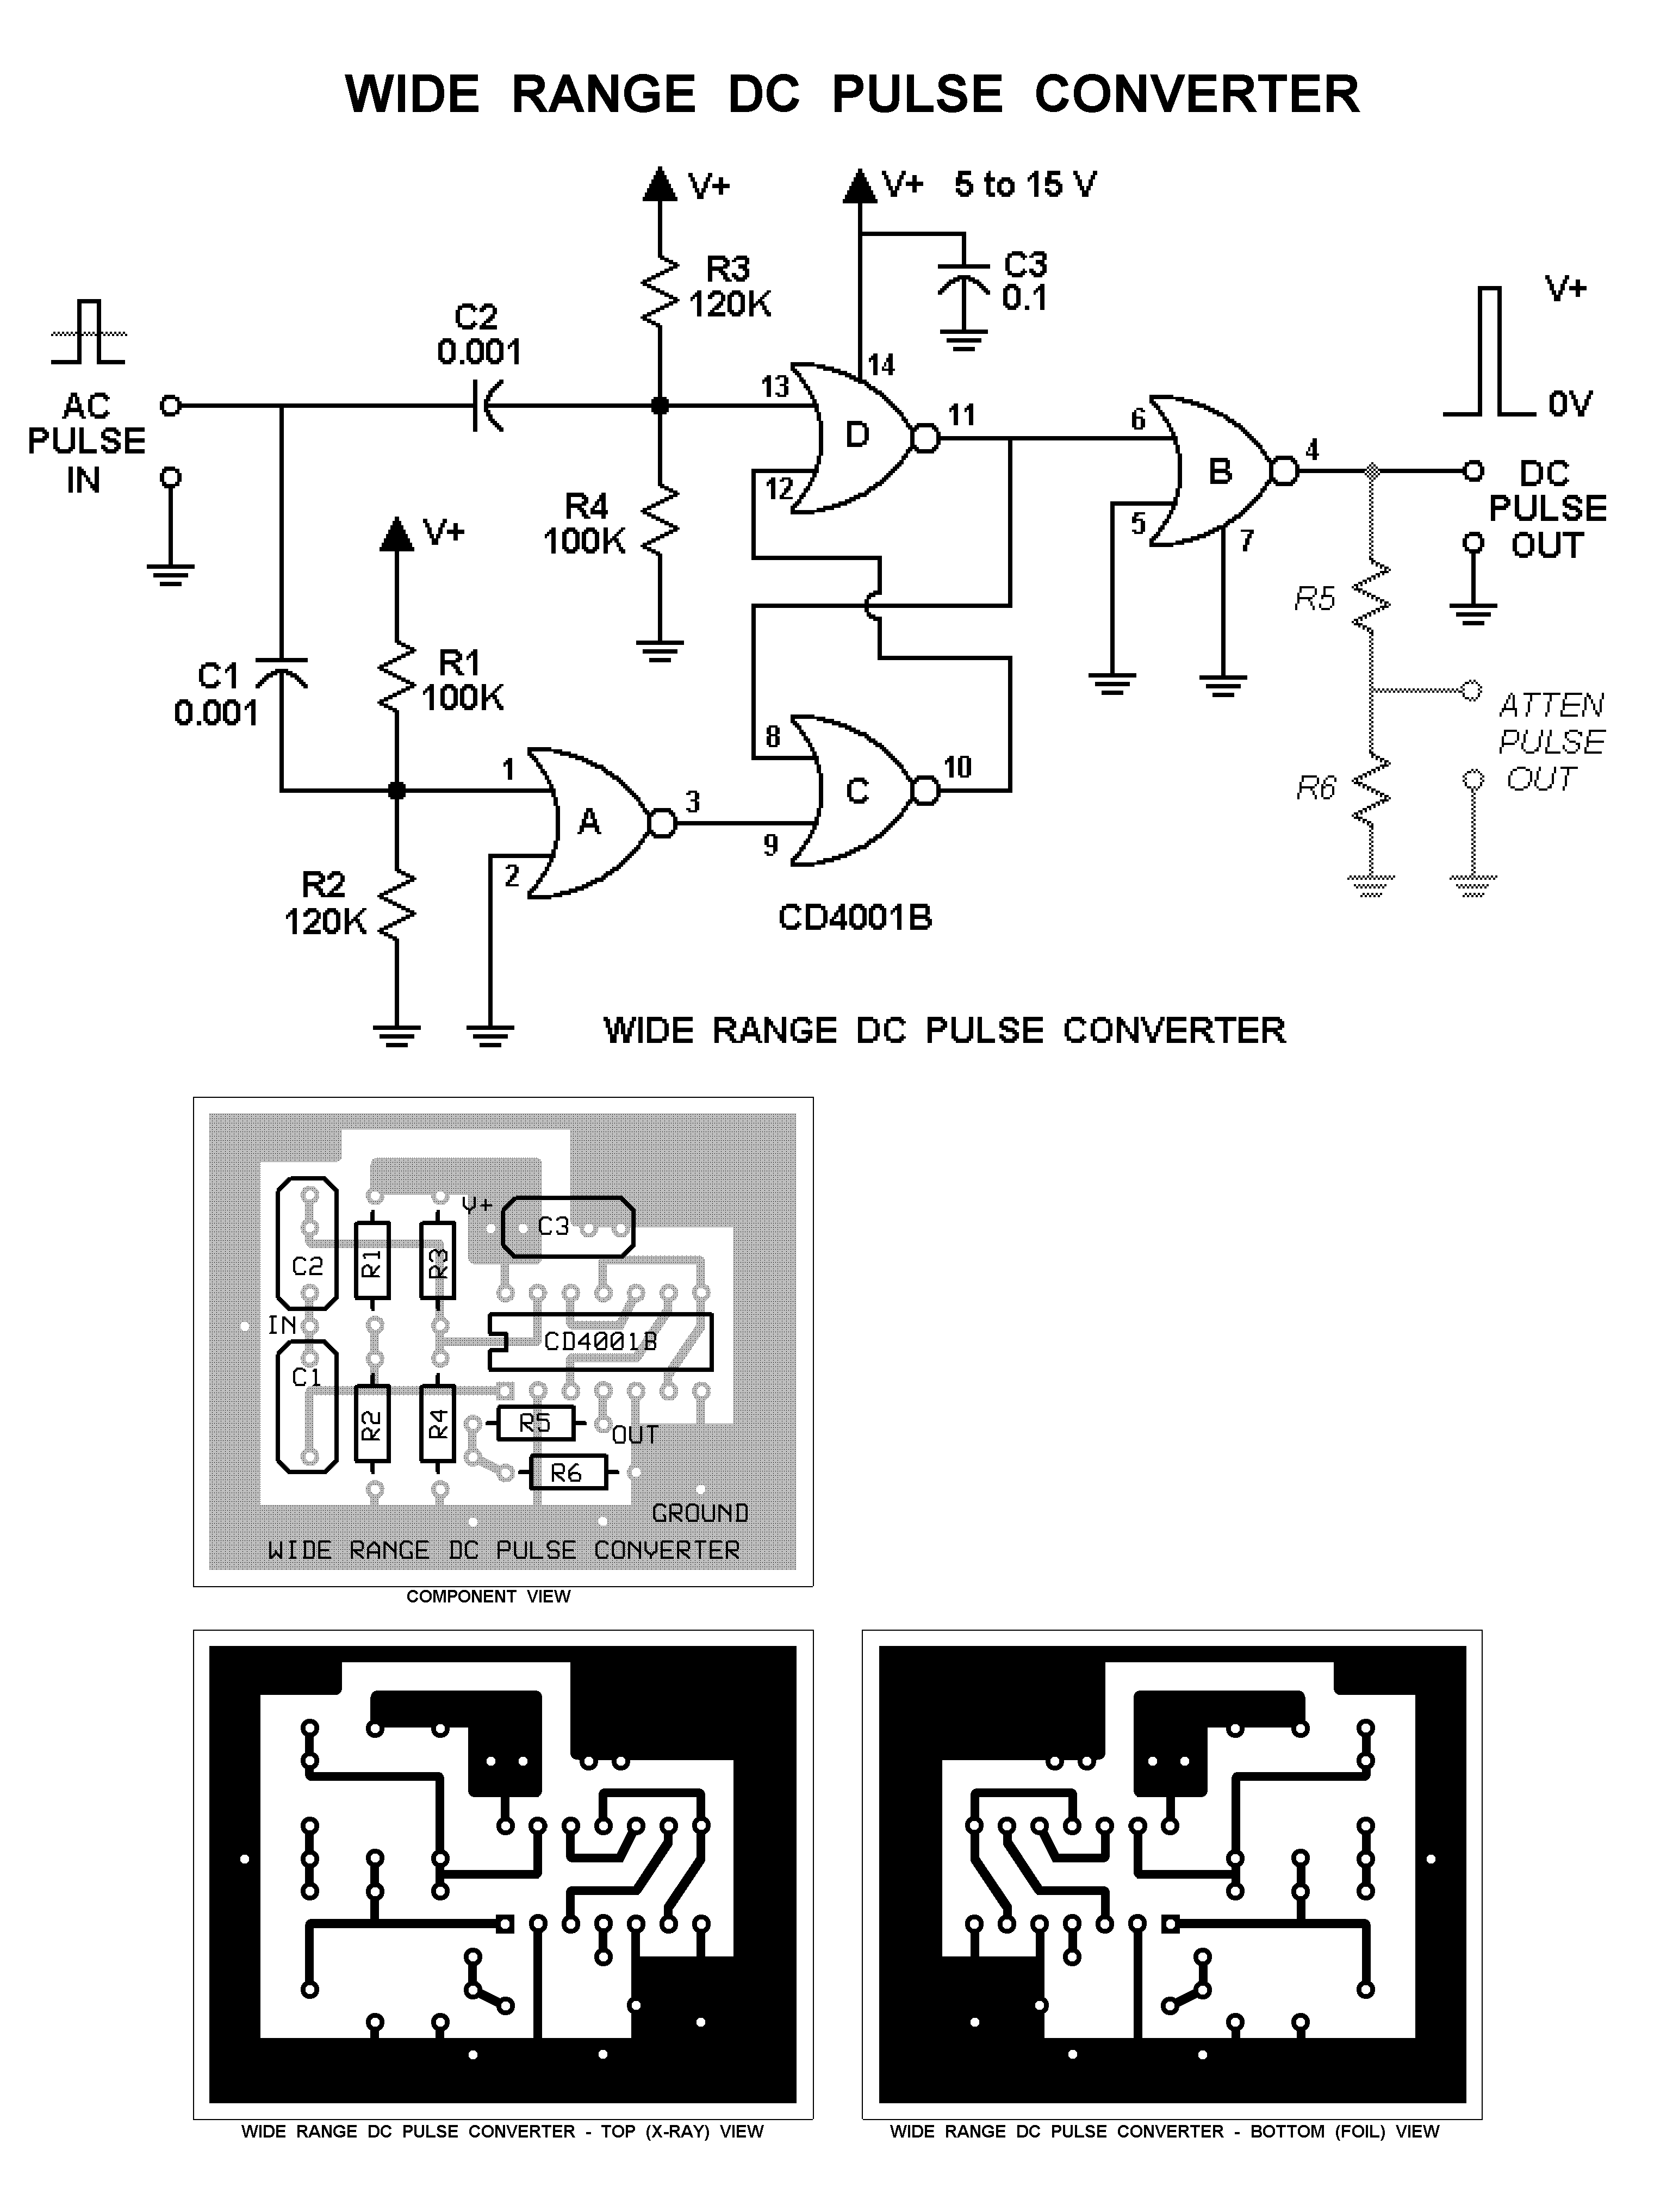 Daqarta Printed Circuits Dc Drill Wiring Diagram Free Picture Schematic Printable And Layouts